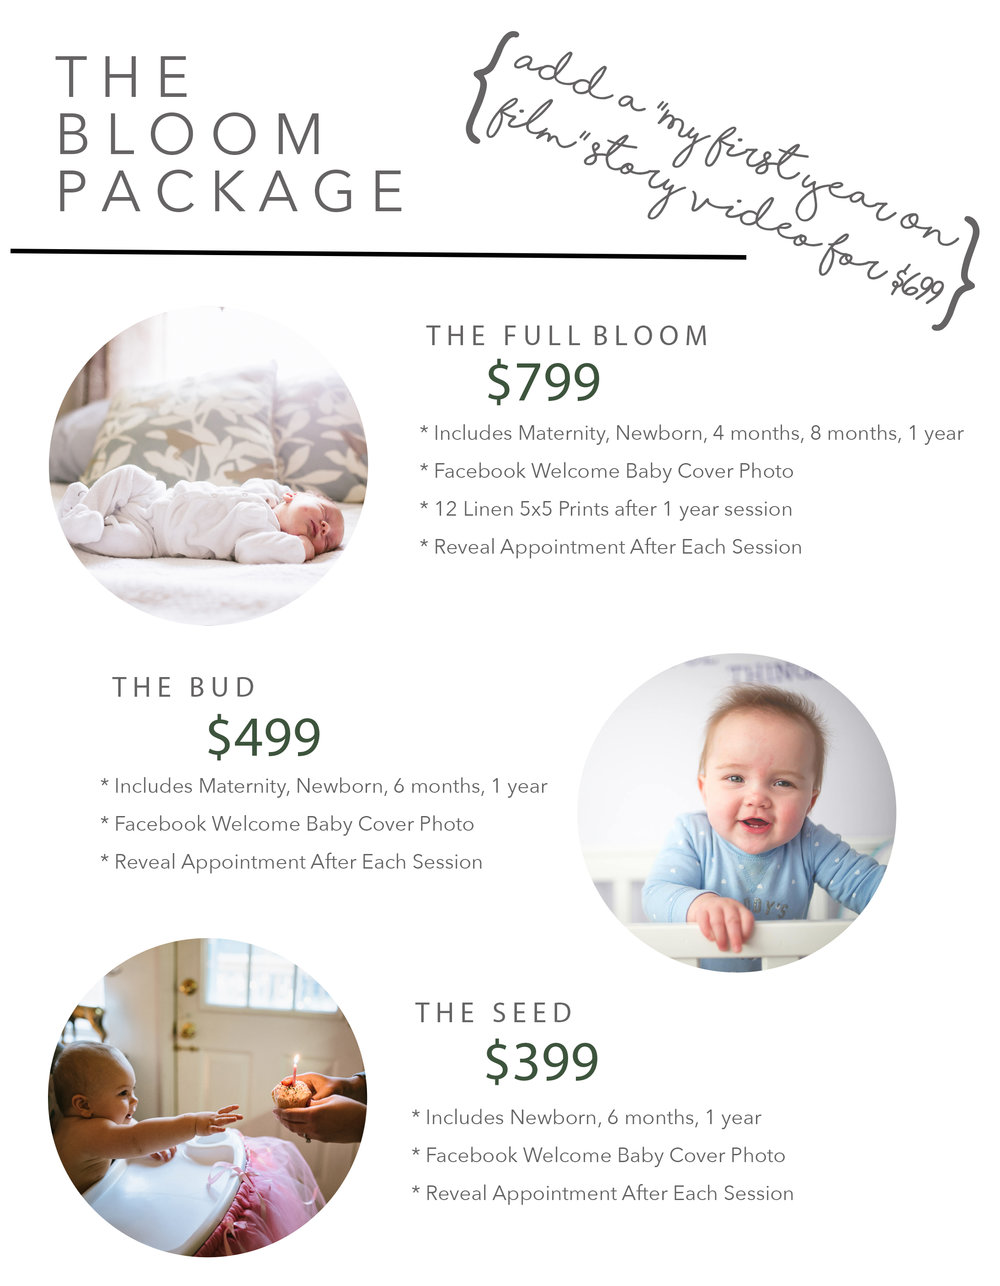 THE-BLOOM-PACKAGE-roanoke-baby-photography-package-pricing